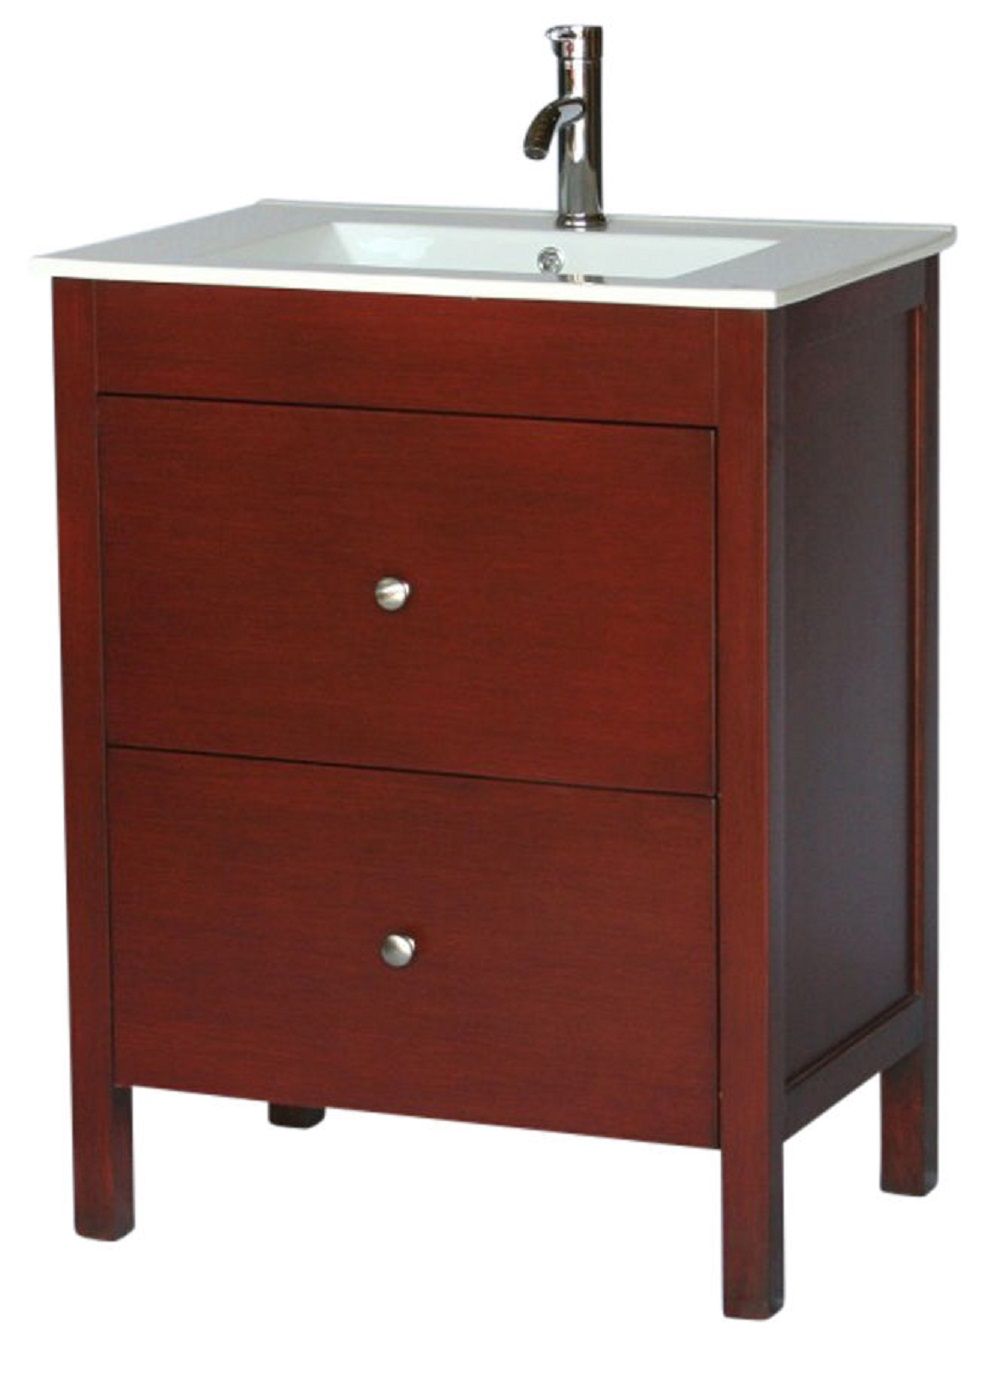 28 Inch 18 Inch Deep Bathroom Vanity Modern Style Cherry Color 28